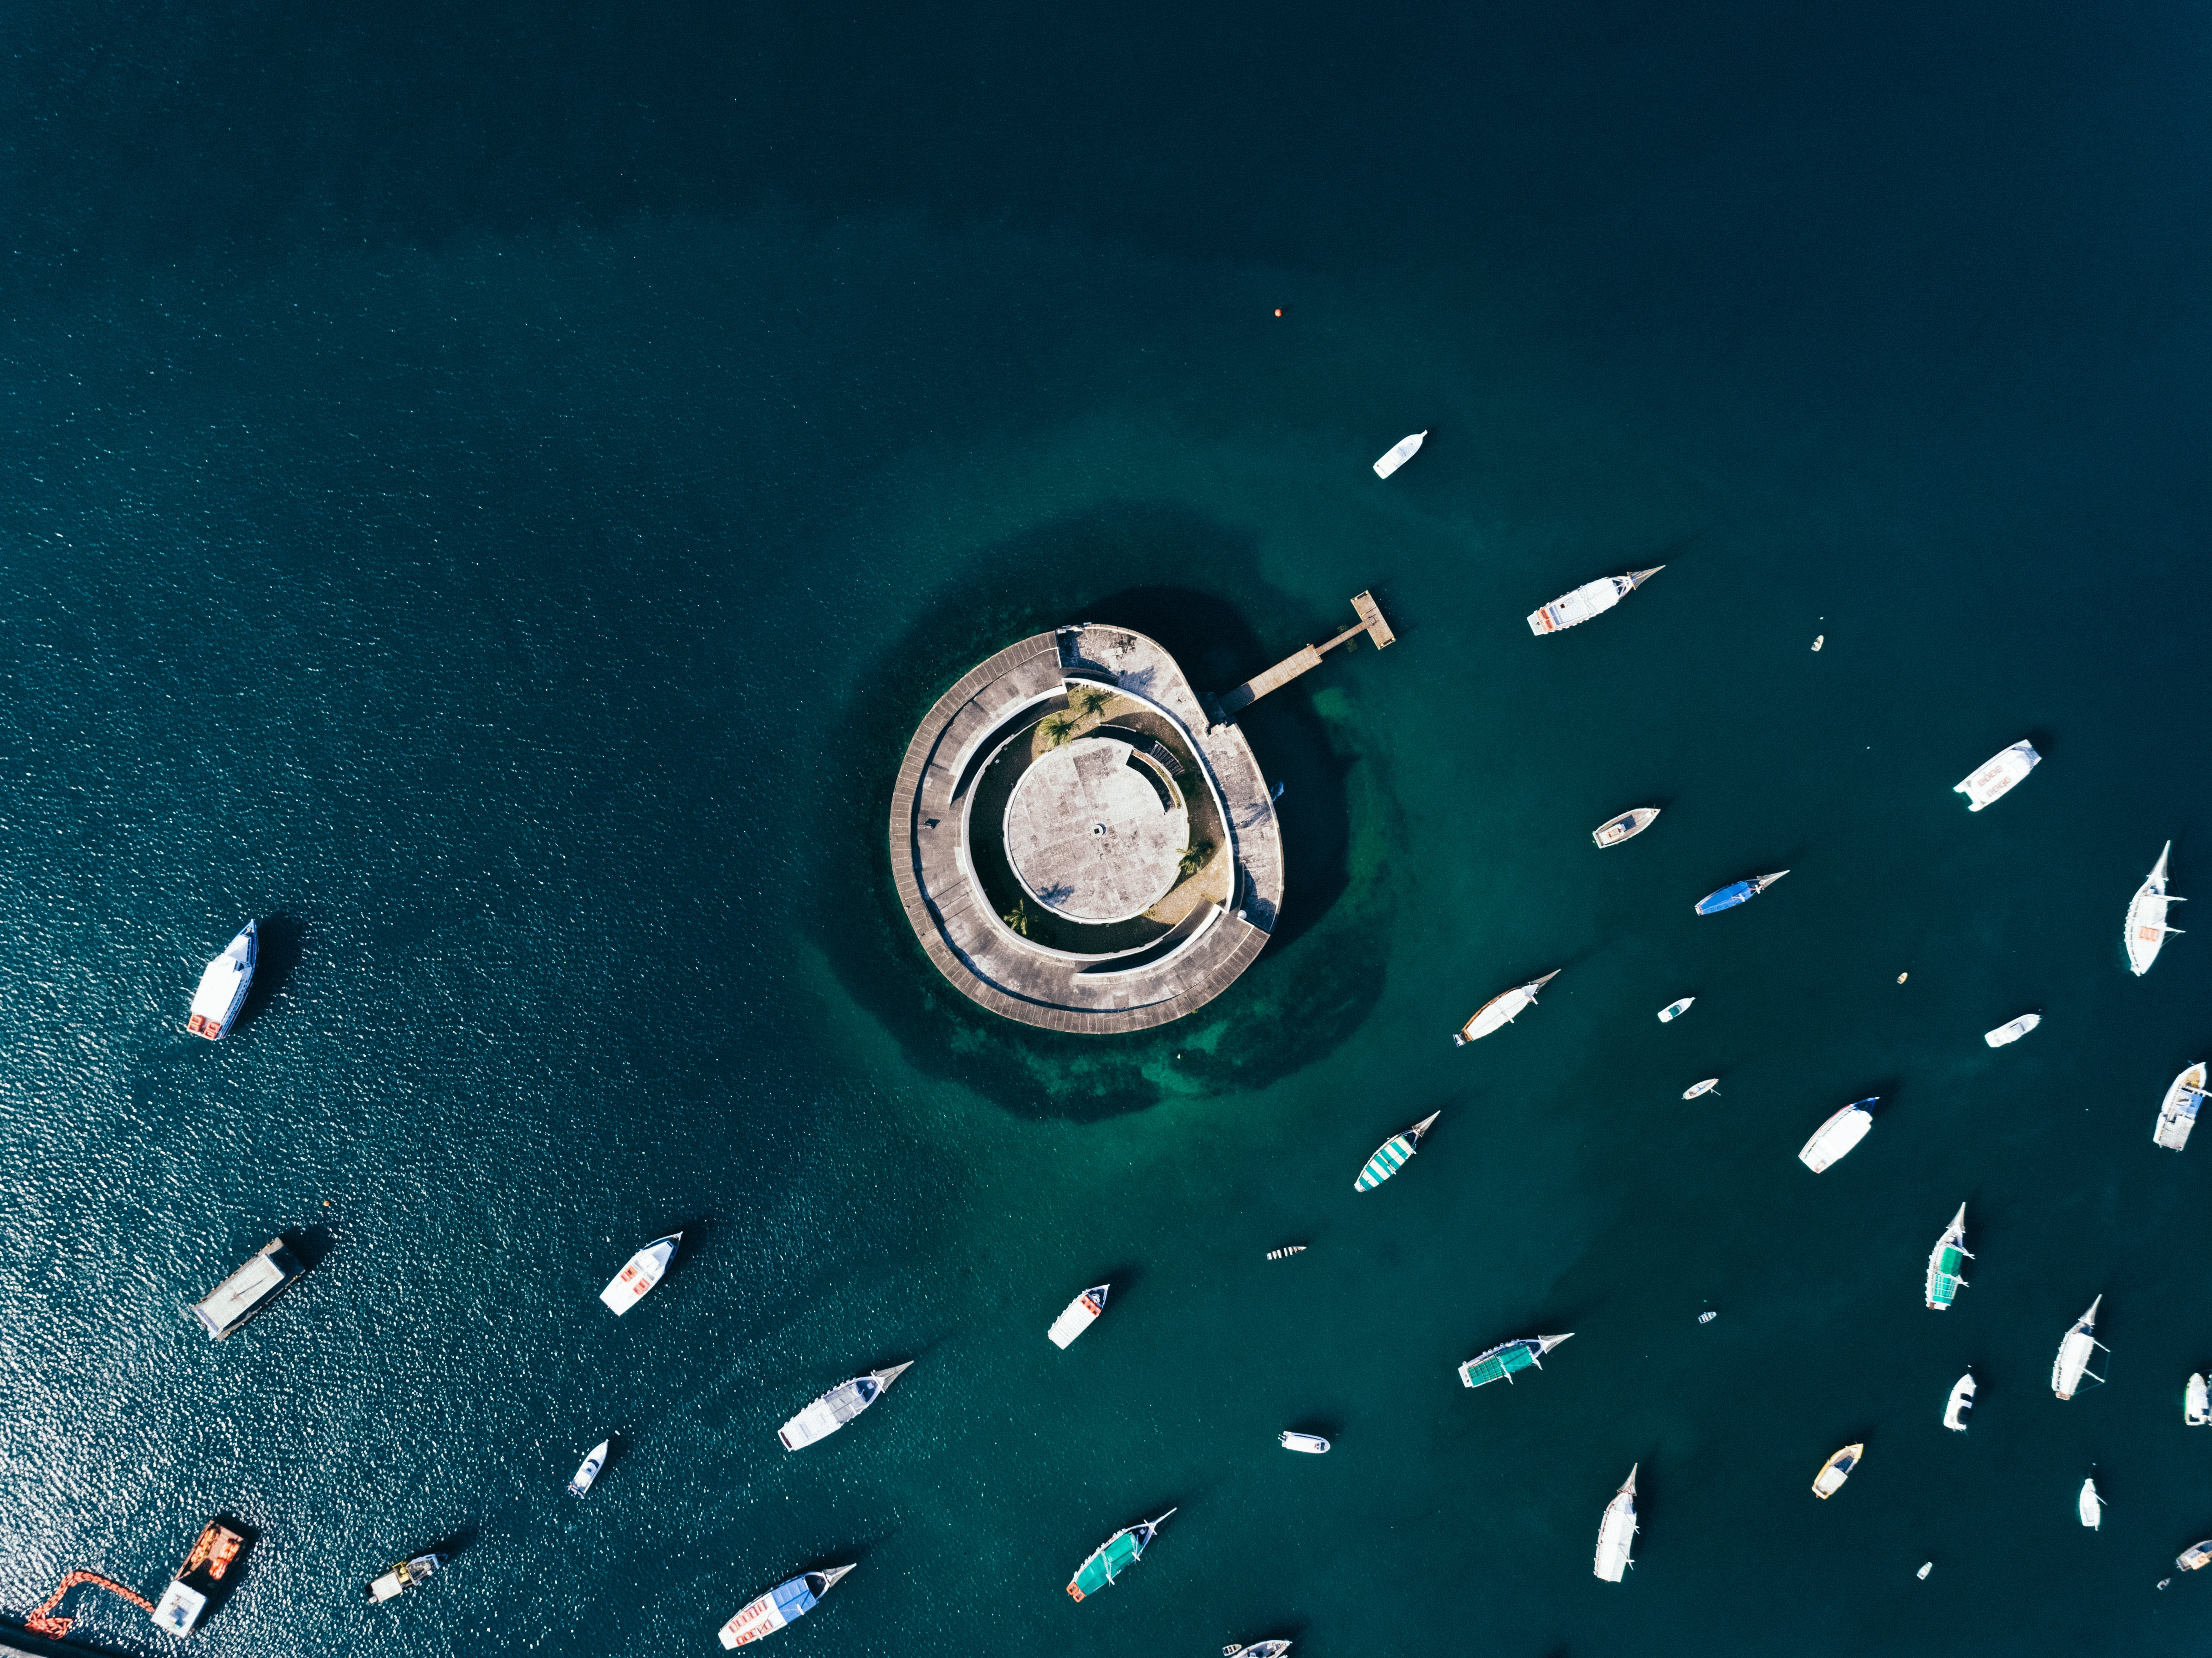 aerial photography of boats and building on body of water during day